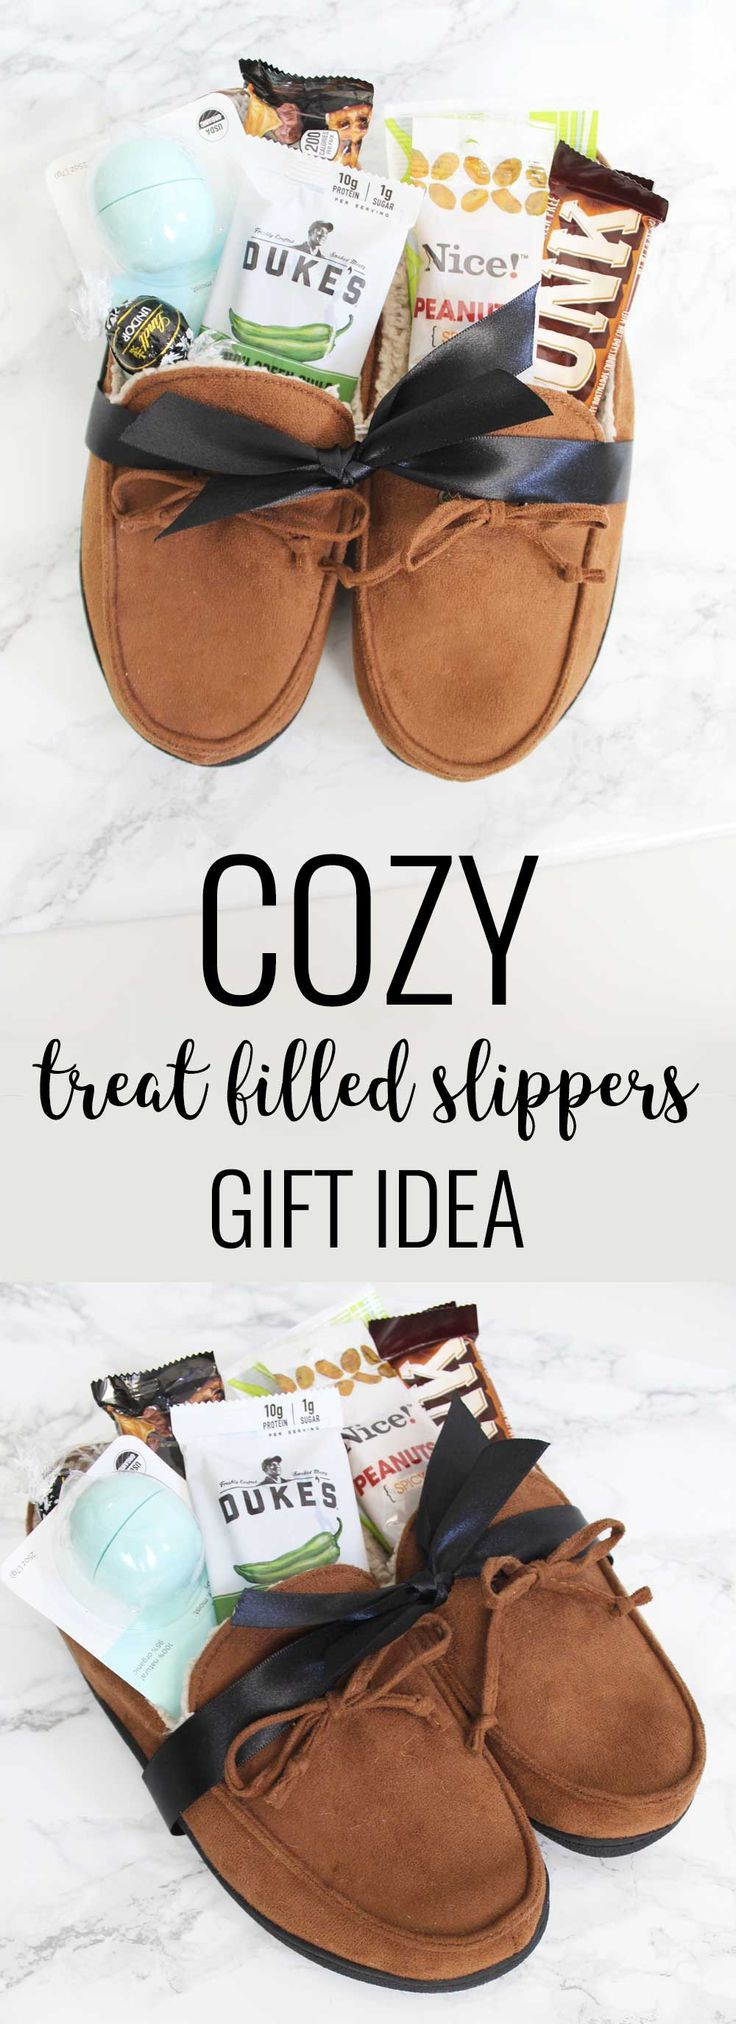 Okay I love this gift idea! Slippers make a great gift and they are even better ...